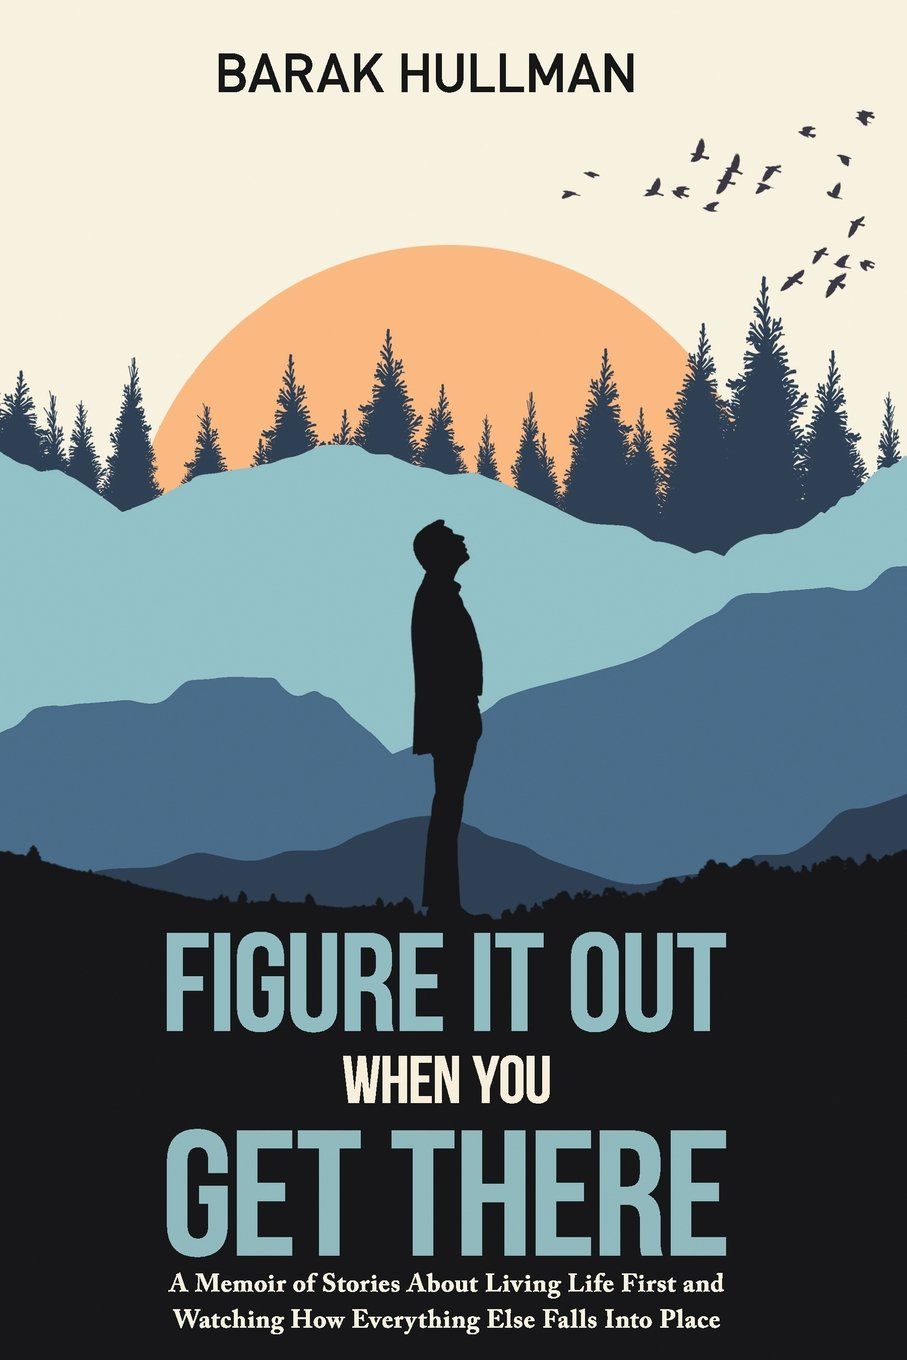 Figure It Out When You Get There: A Memoir of Stories About Living Life First and Watching How Everything Falls In Line